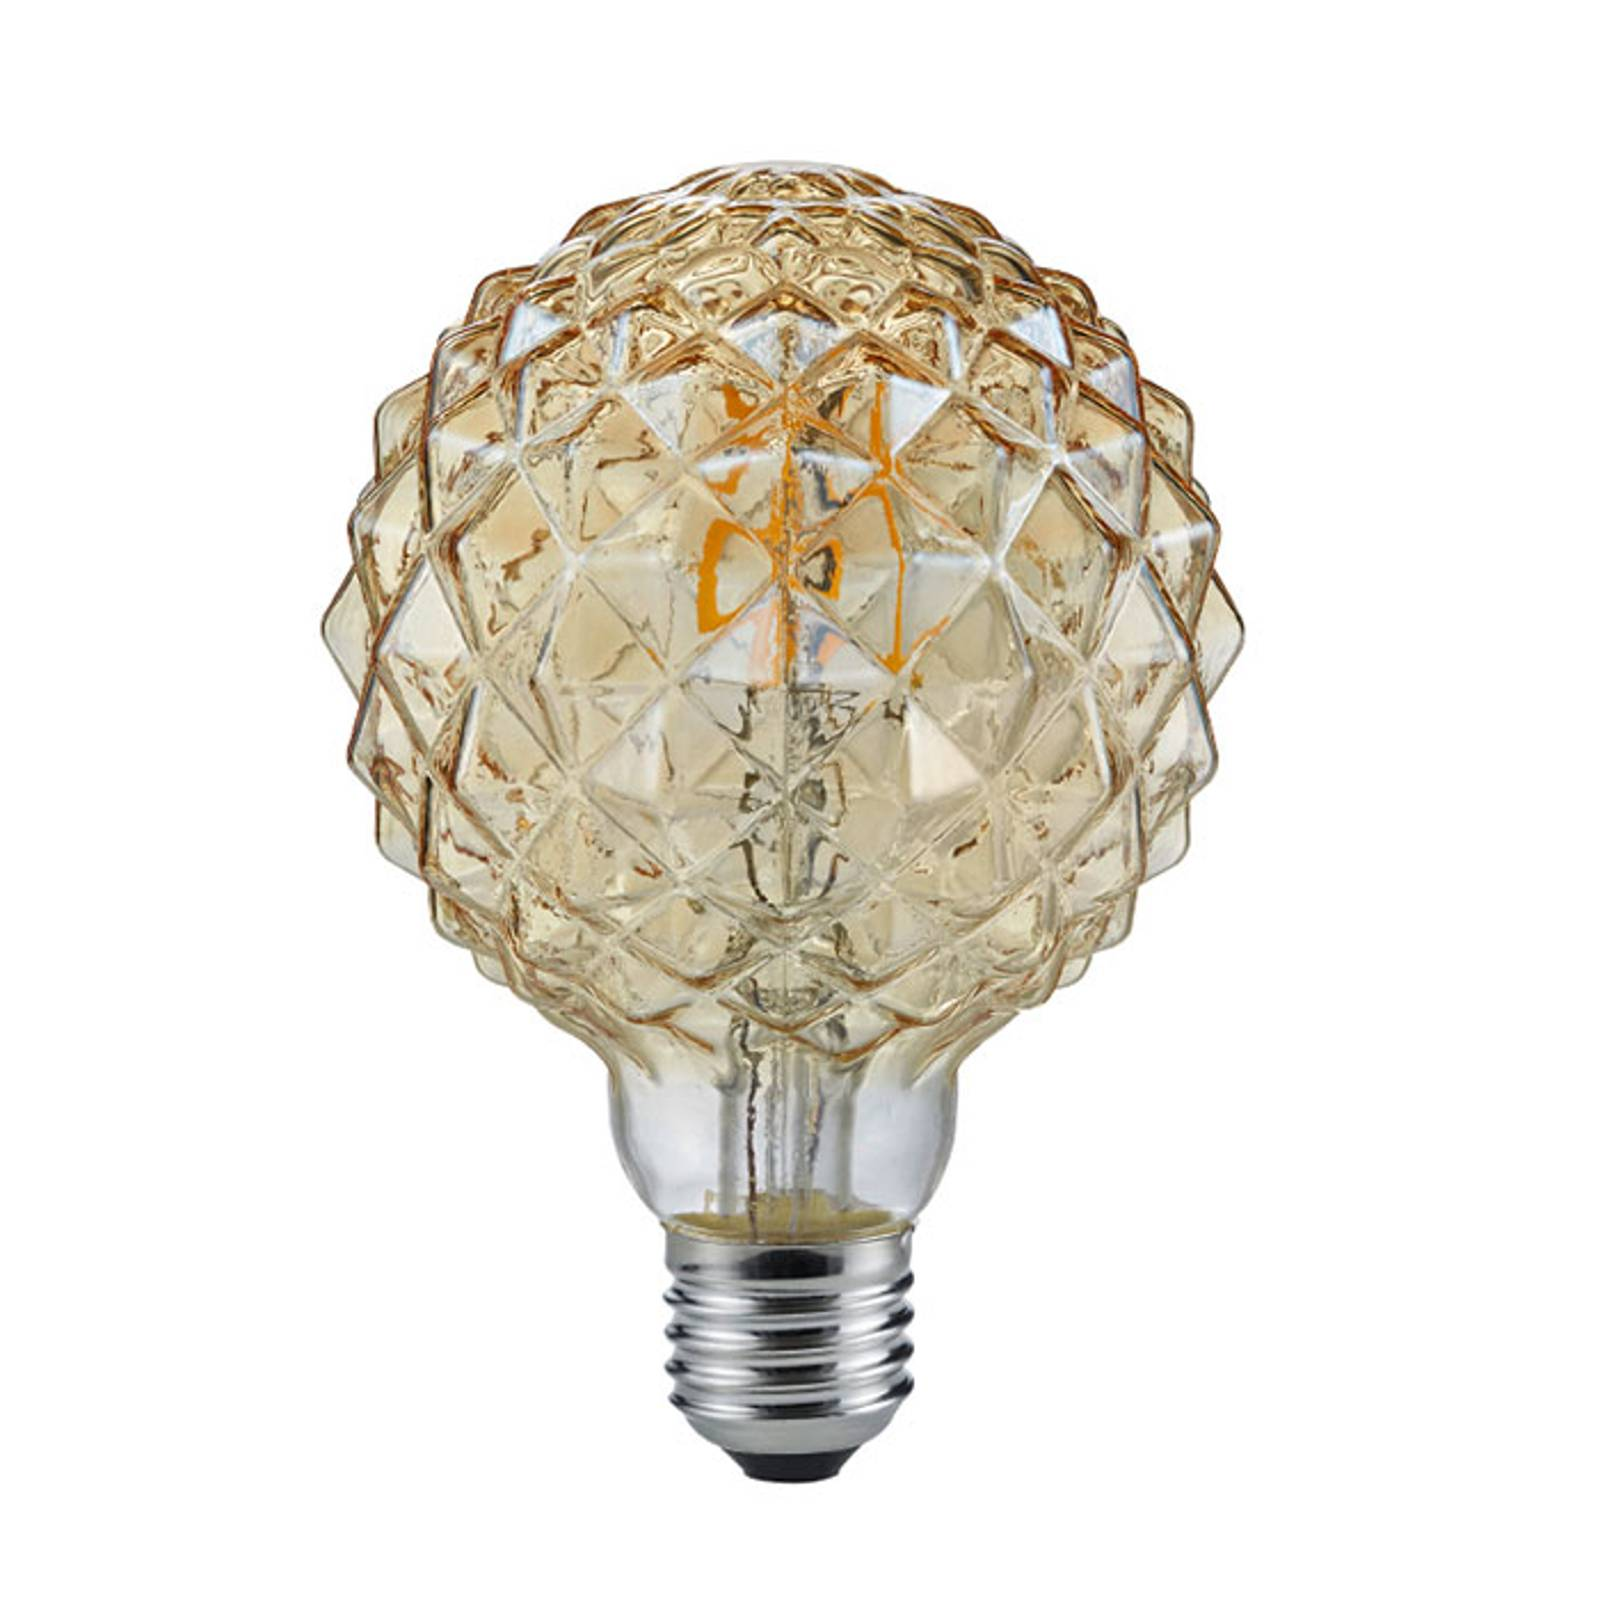 Bombilla globo LED E27 4W 2.700K estructura ámbar de Trio Lighting